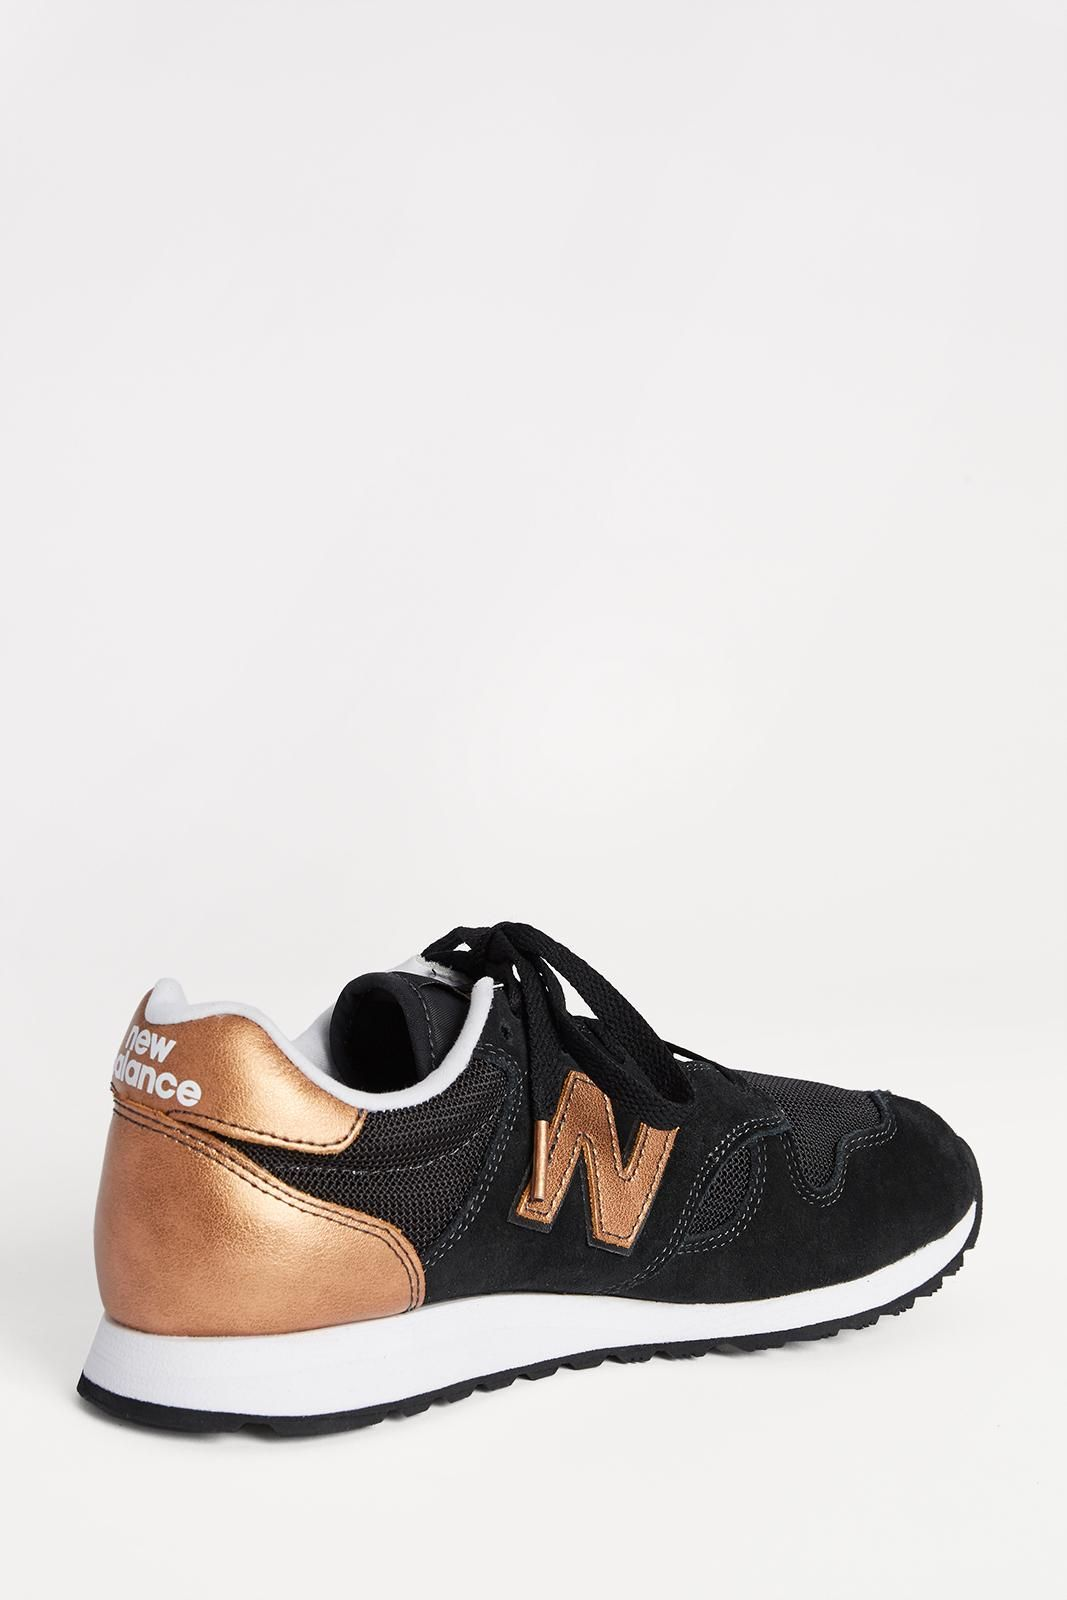 732ab9c30382 520 Lifestyle Sneaker by NEW BALANCE - EVEREVE